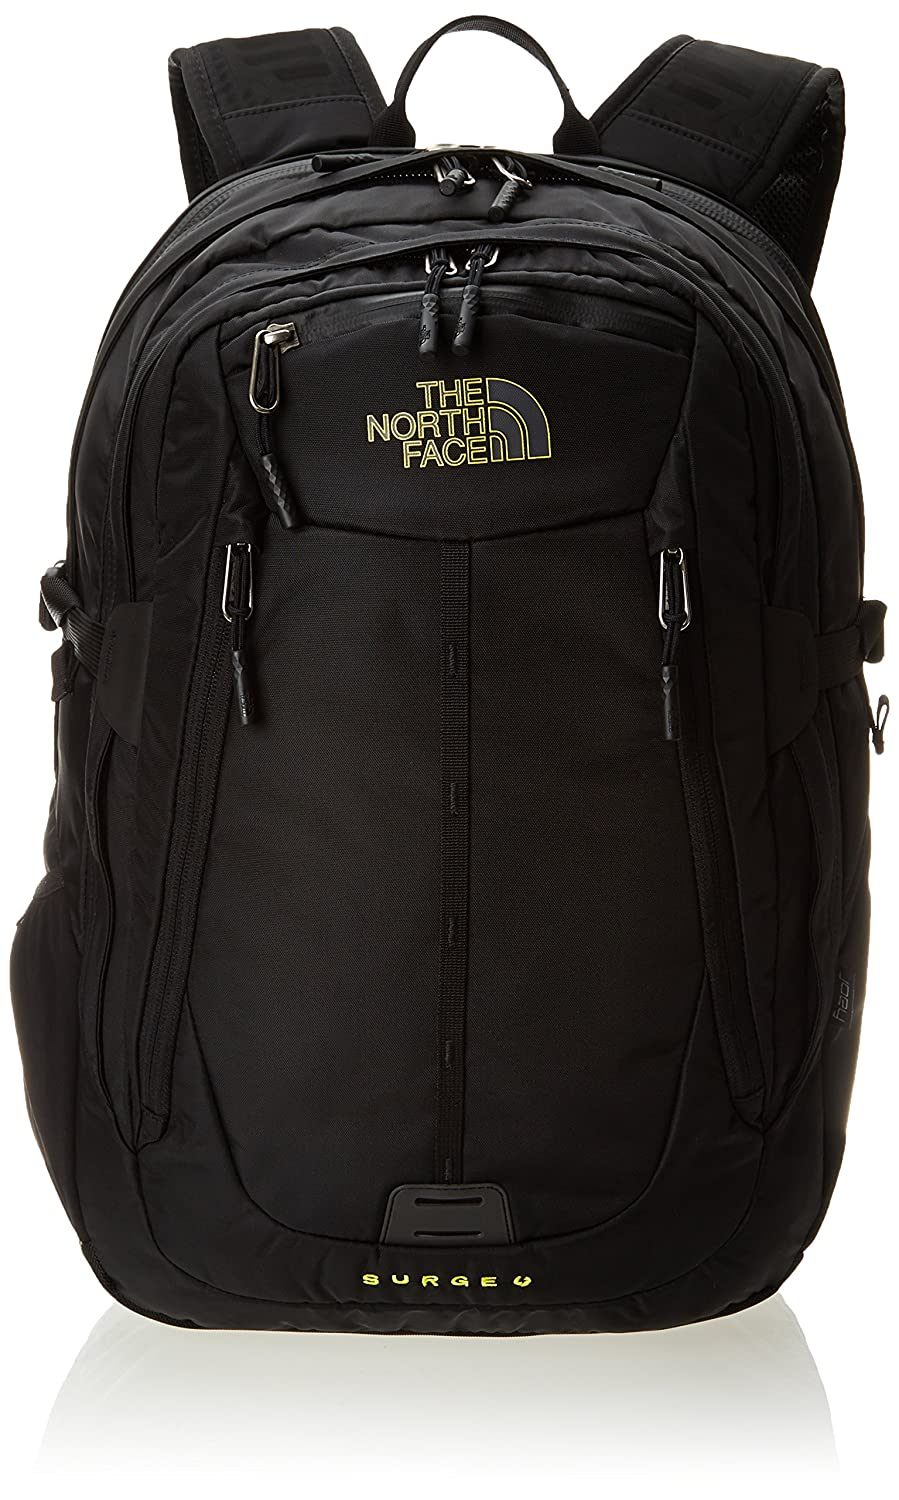 The North Face Surge II Charged – Laptoprucksack jetzt kaufen